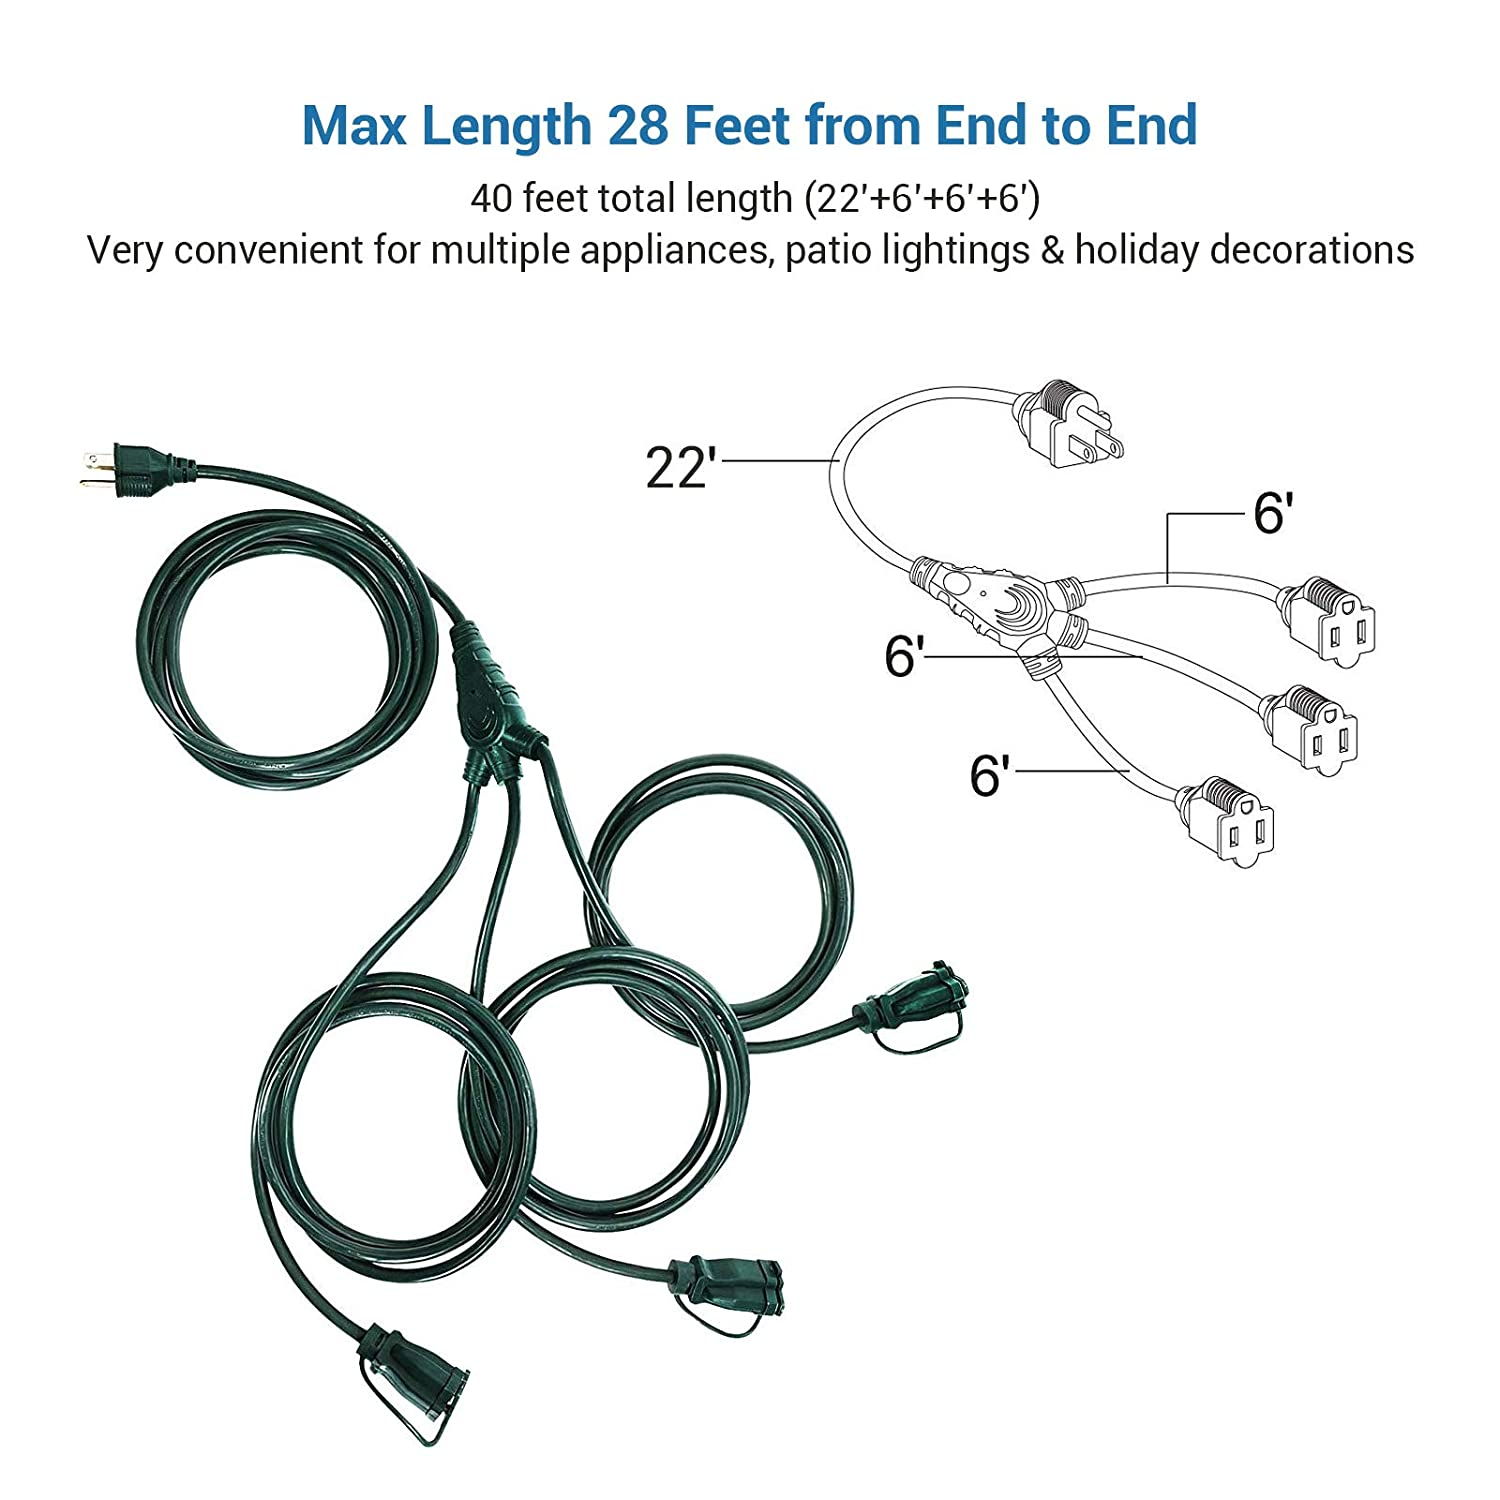 5915a Dewenwils Outdoor Extension Cord 1 To 3 Splitter 3 Prong Outlets Plugs 40 Feet Max 28ft Each Line 16 3c Sjtw Weatherproof Wire For Outdoor Lights Wiring Library